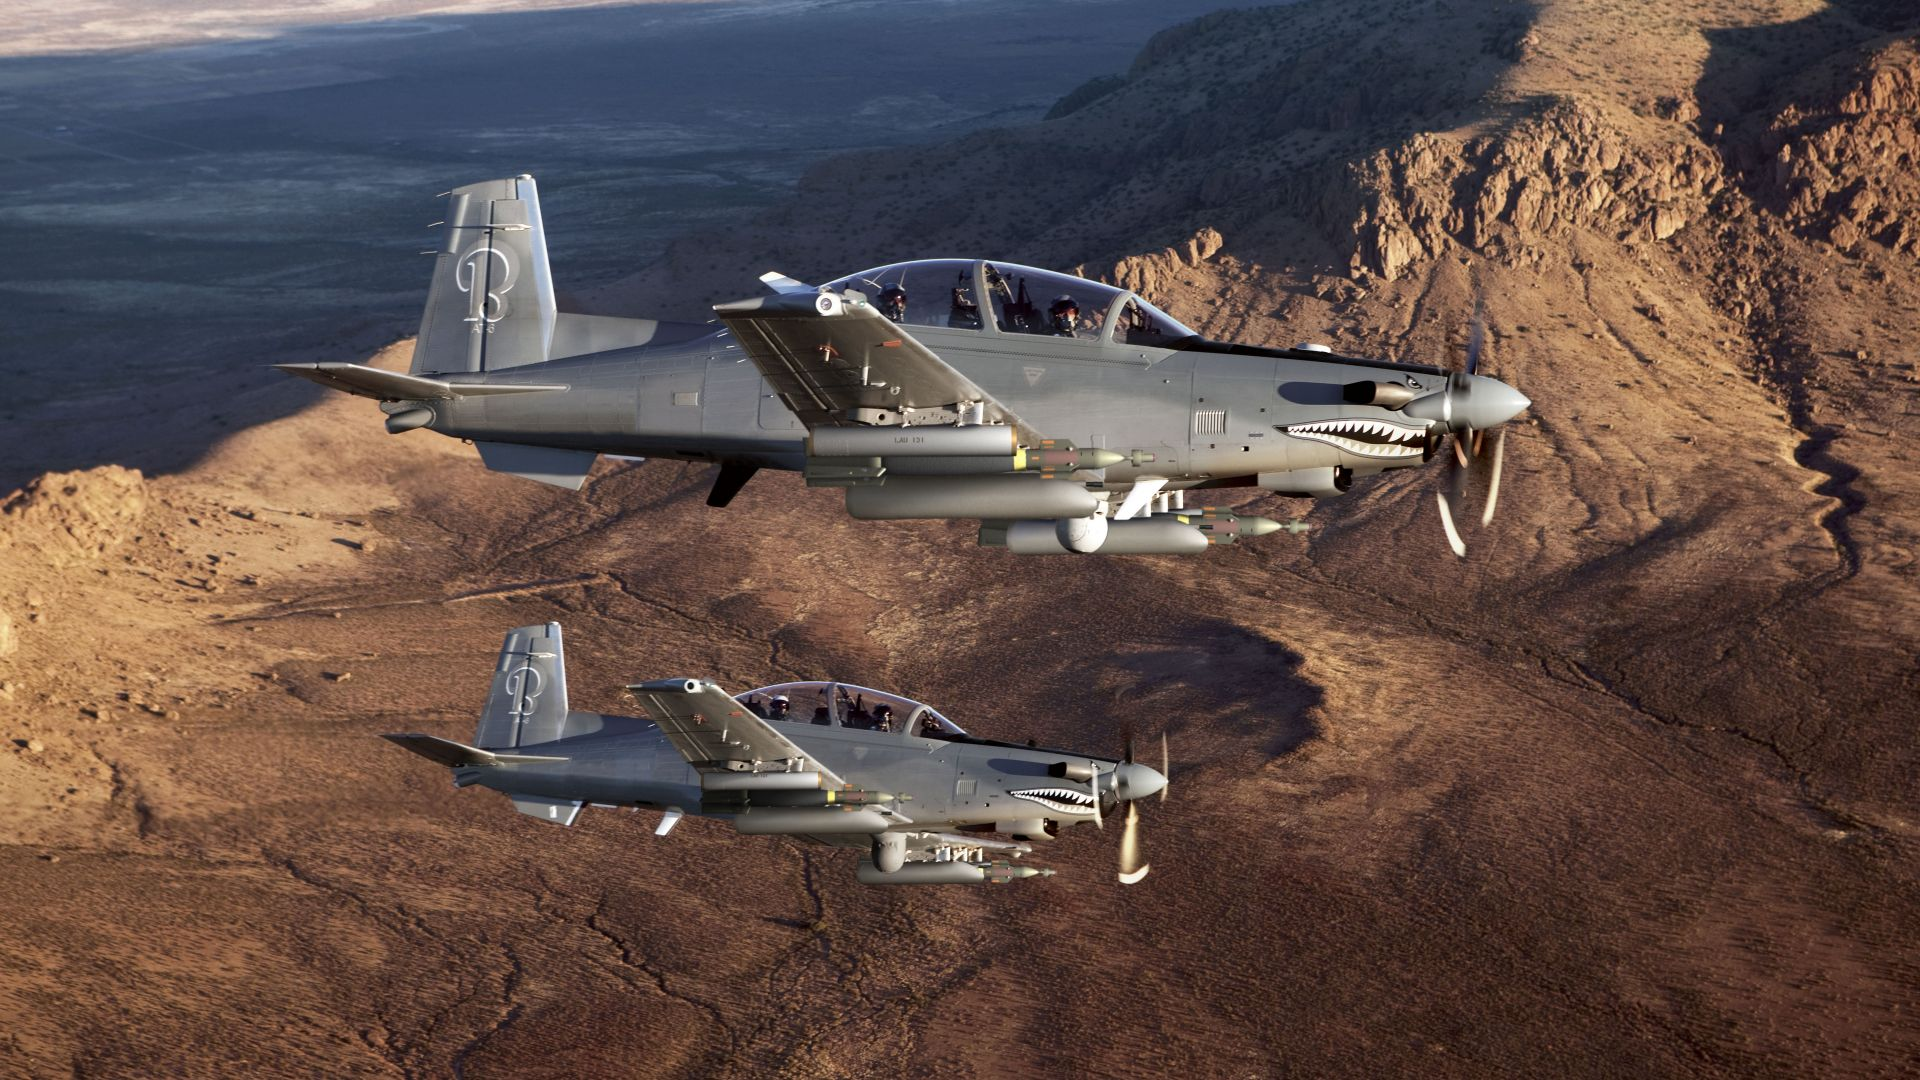 wallpaper beechcraft at 6 light attack aircraft usa army fighter aircraft air force usa. Black Bedroom Furniture Sets. Home Design Ideas